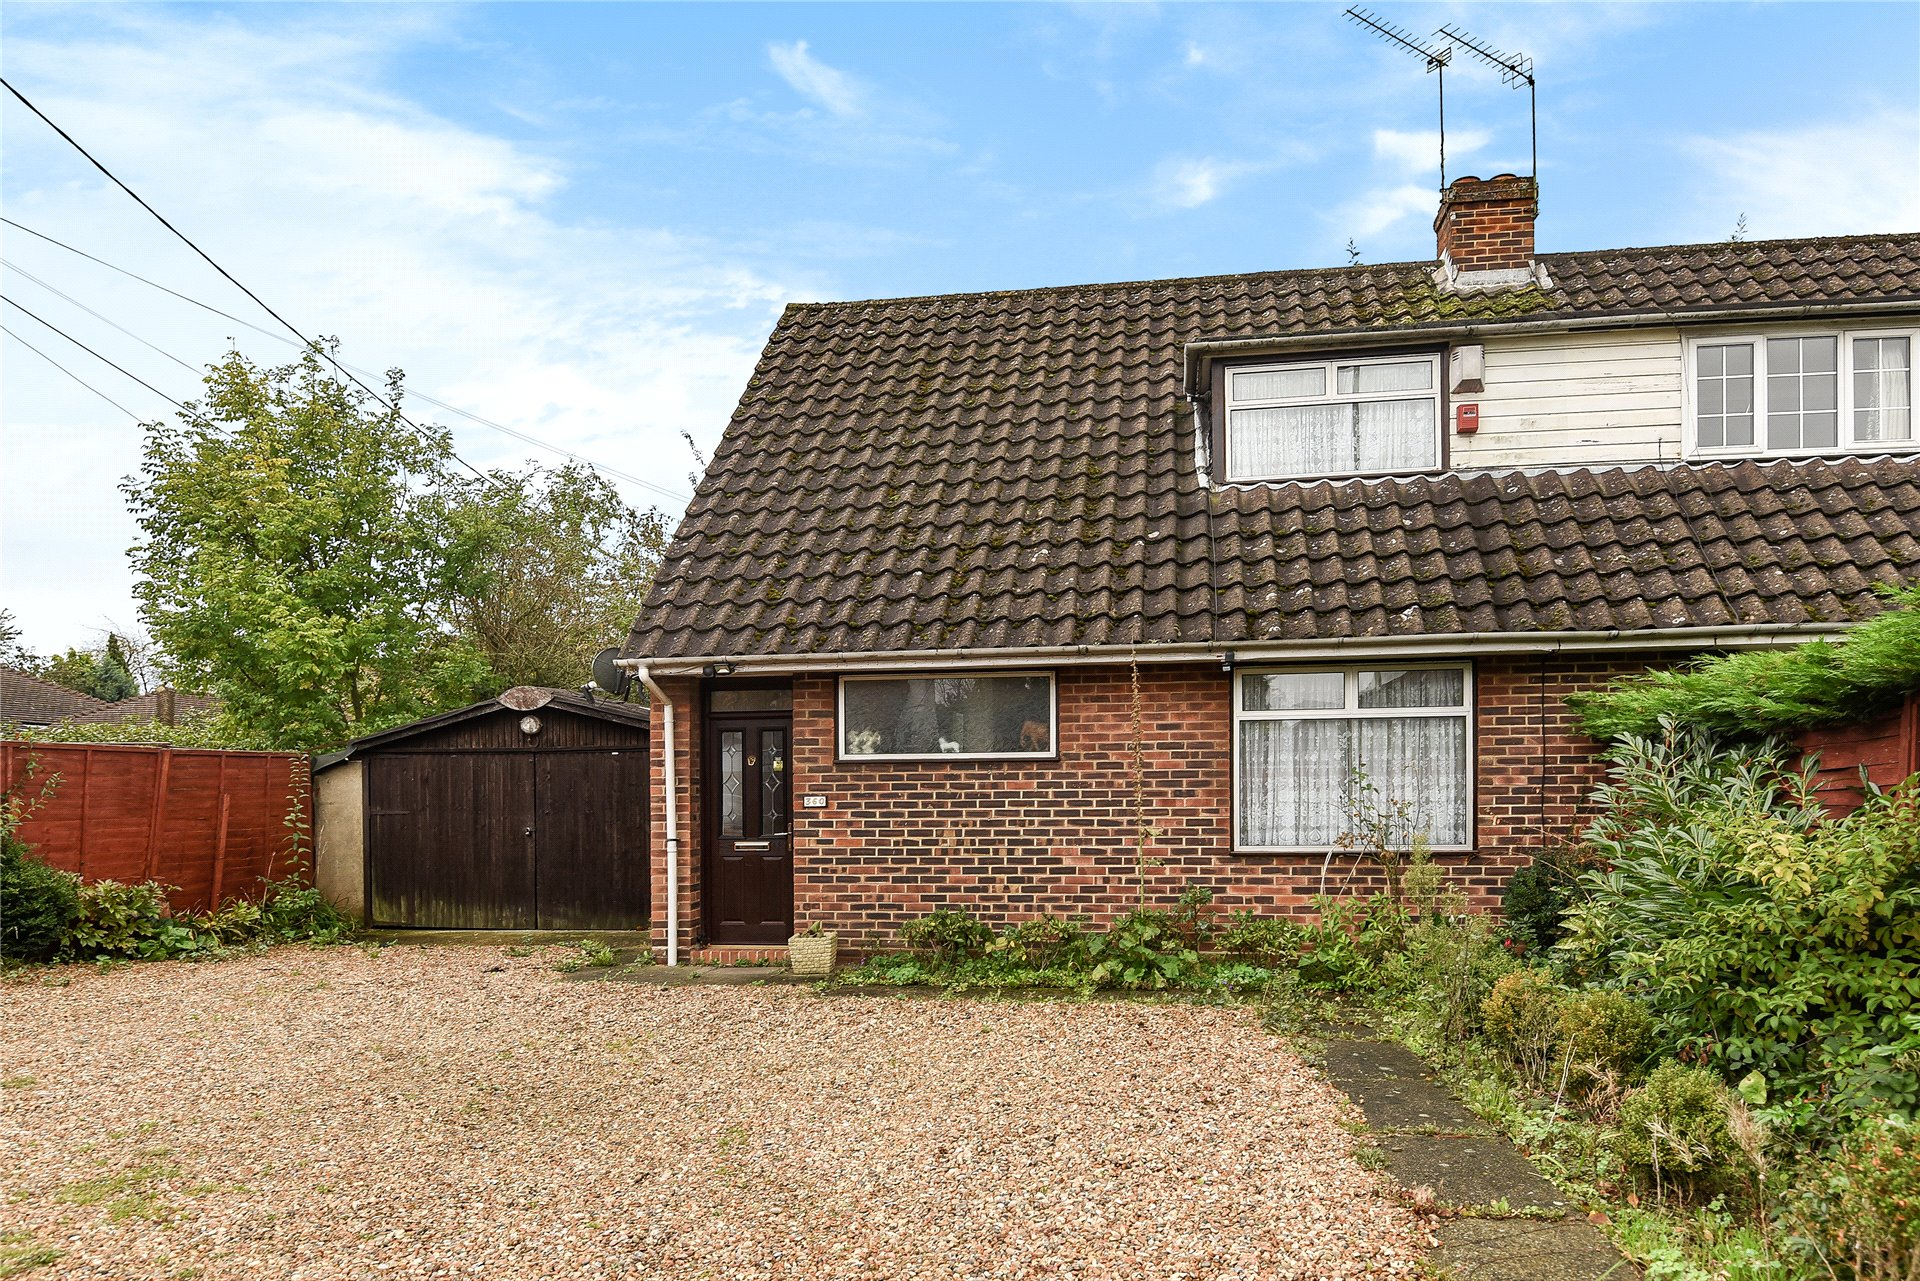 3 Bedrooms Semi Detached House for sale in Reading Road, Winnersh, Wokingham, Berkshire, RG41